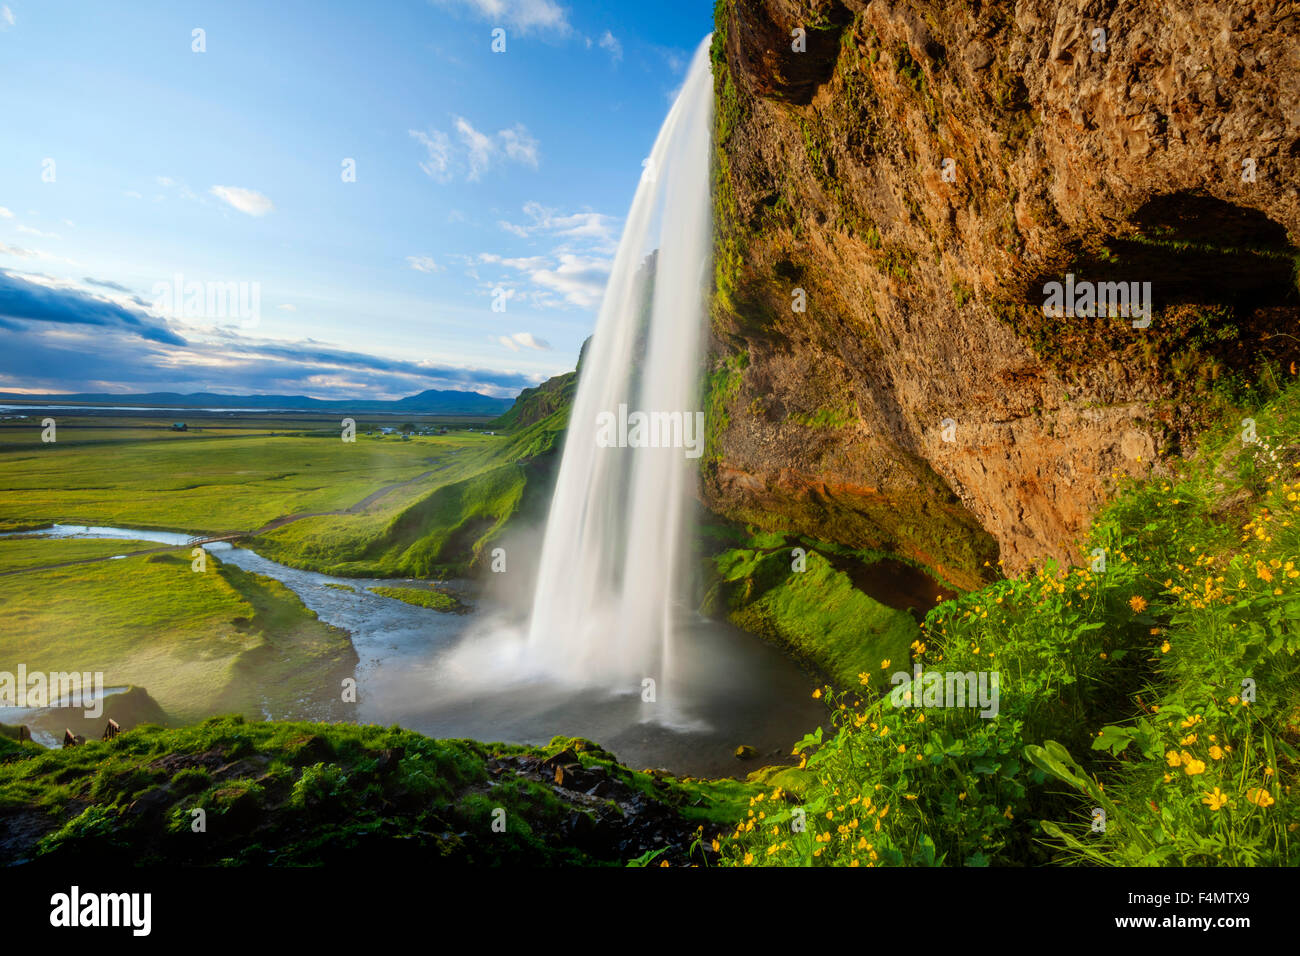 Buttercups beside 60m-high Seljalandsfoss waterfall, Sudhurland, Iceland. - Stock Image